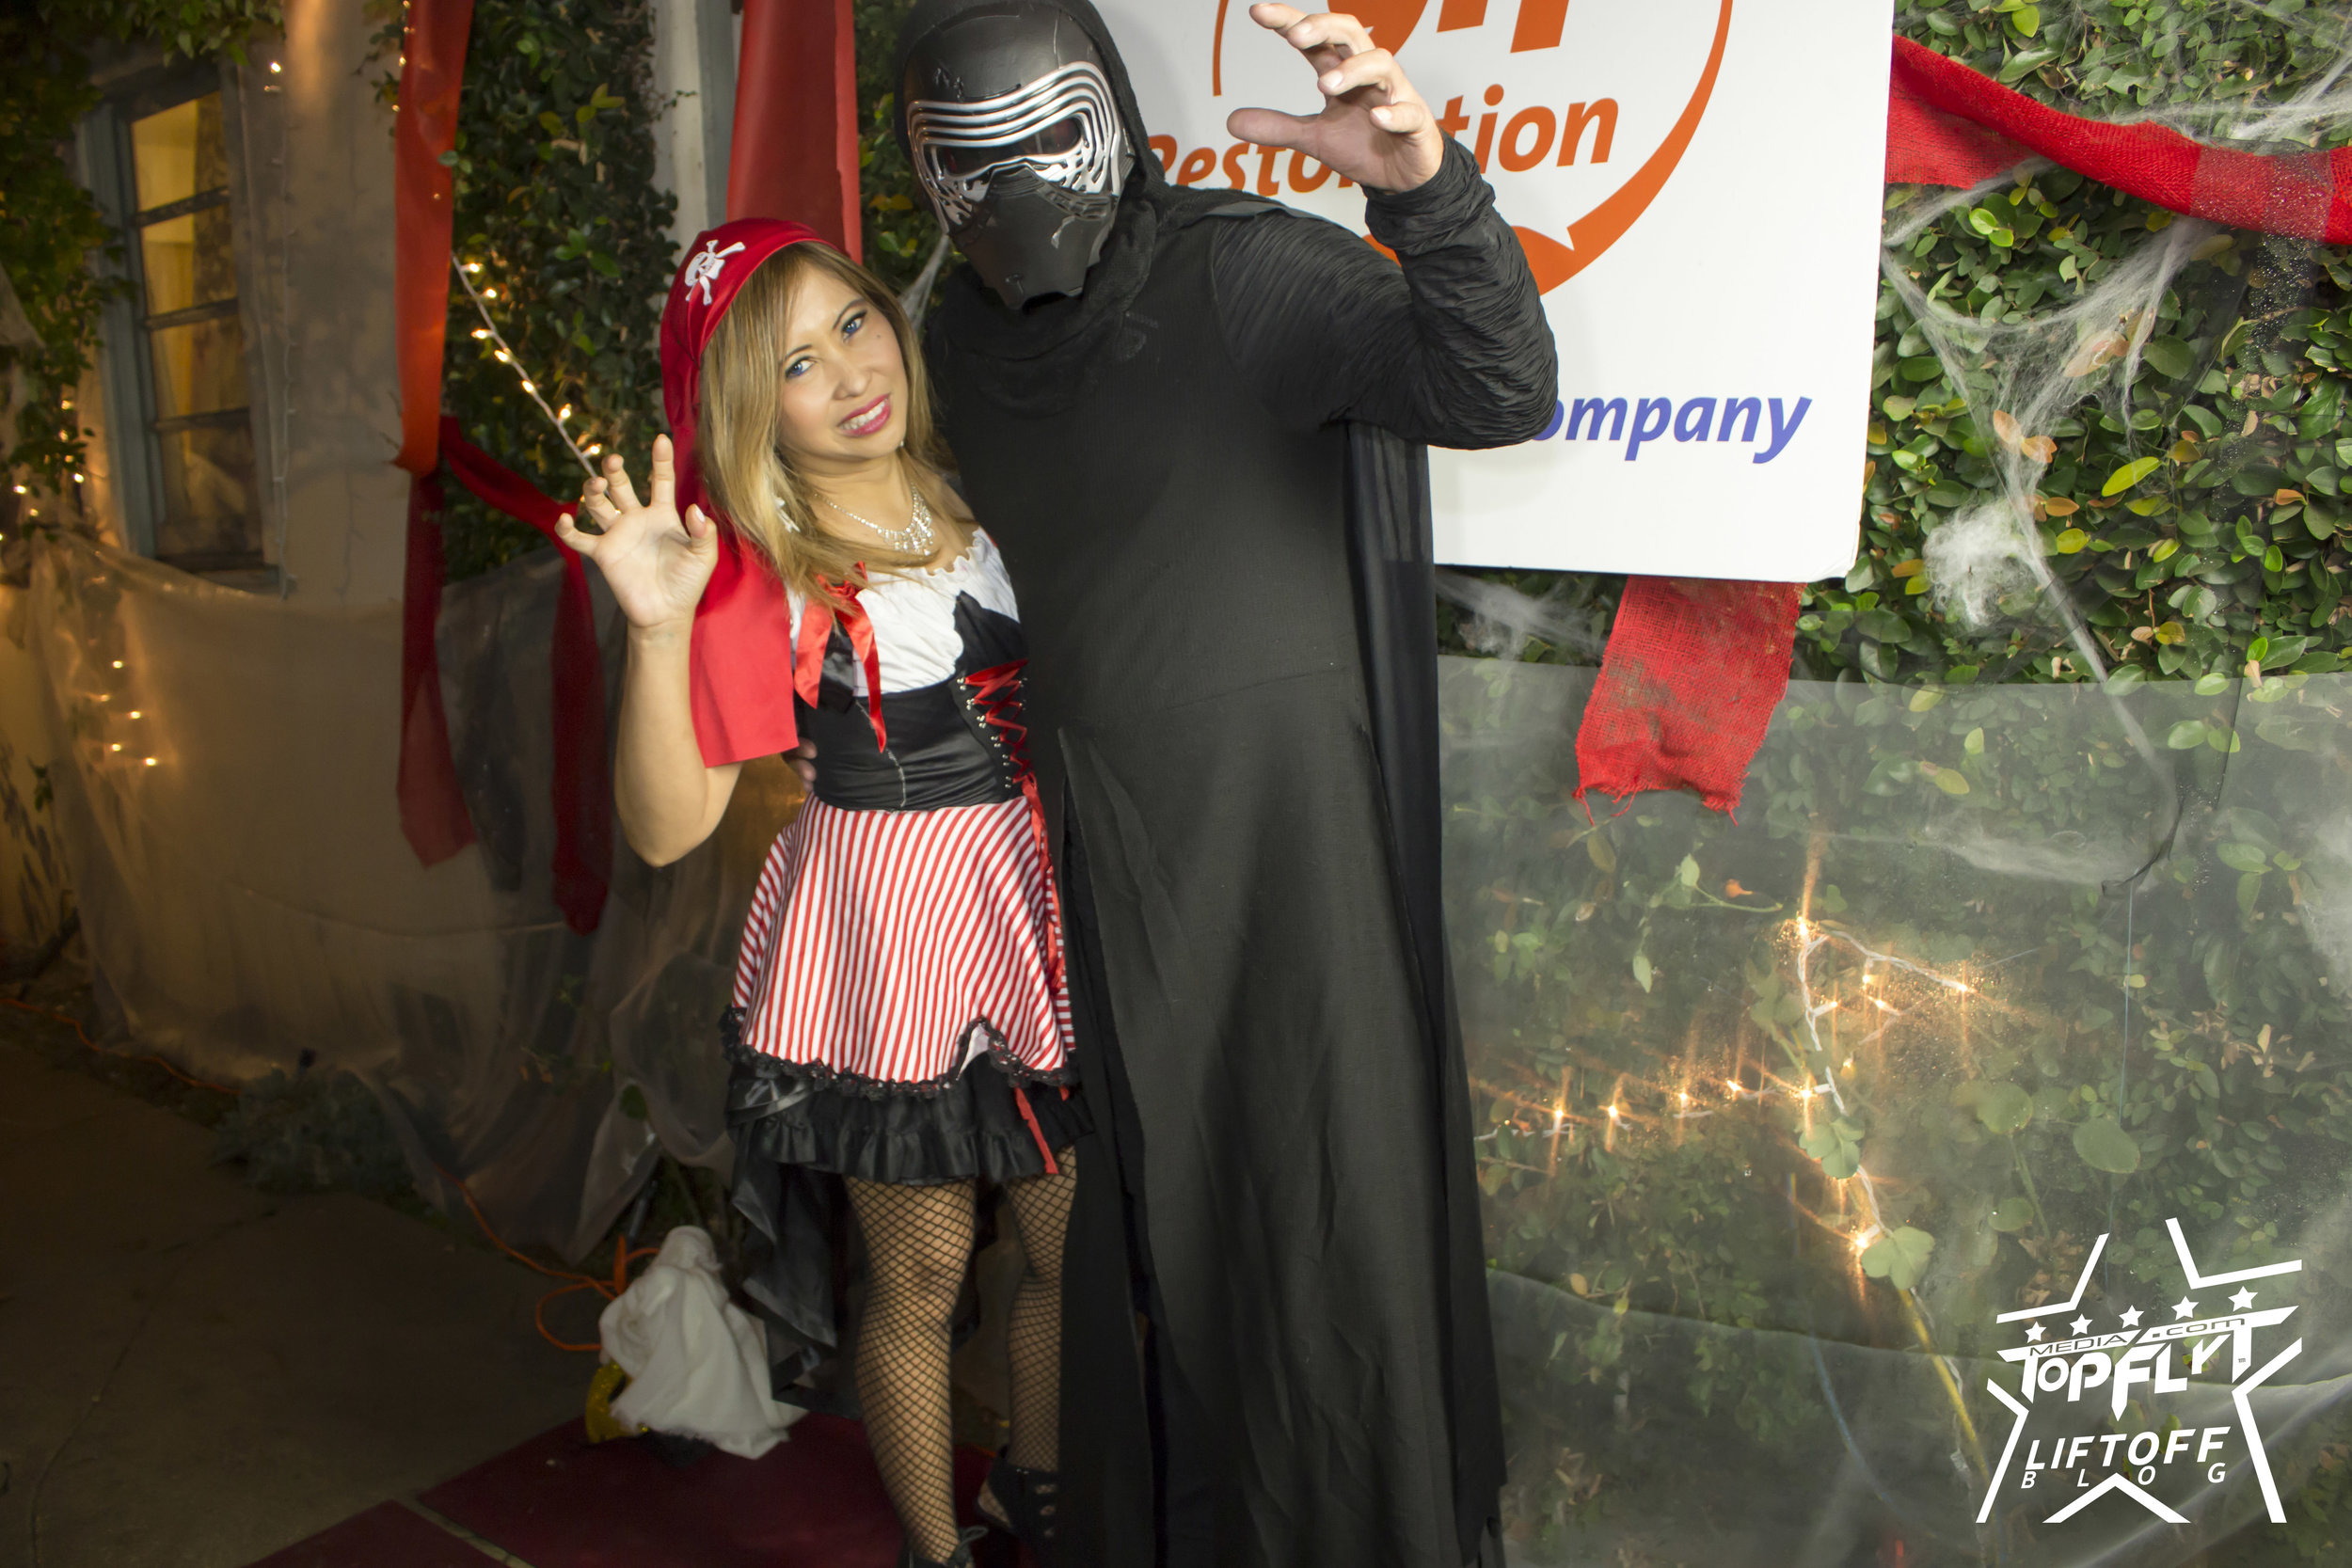 Networth Connection - Masquerade Party_61.jpg